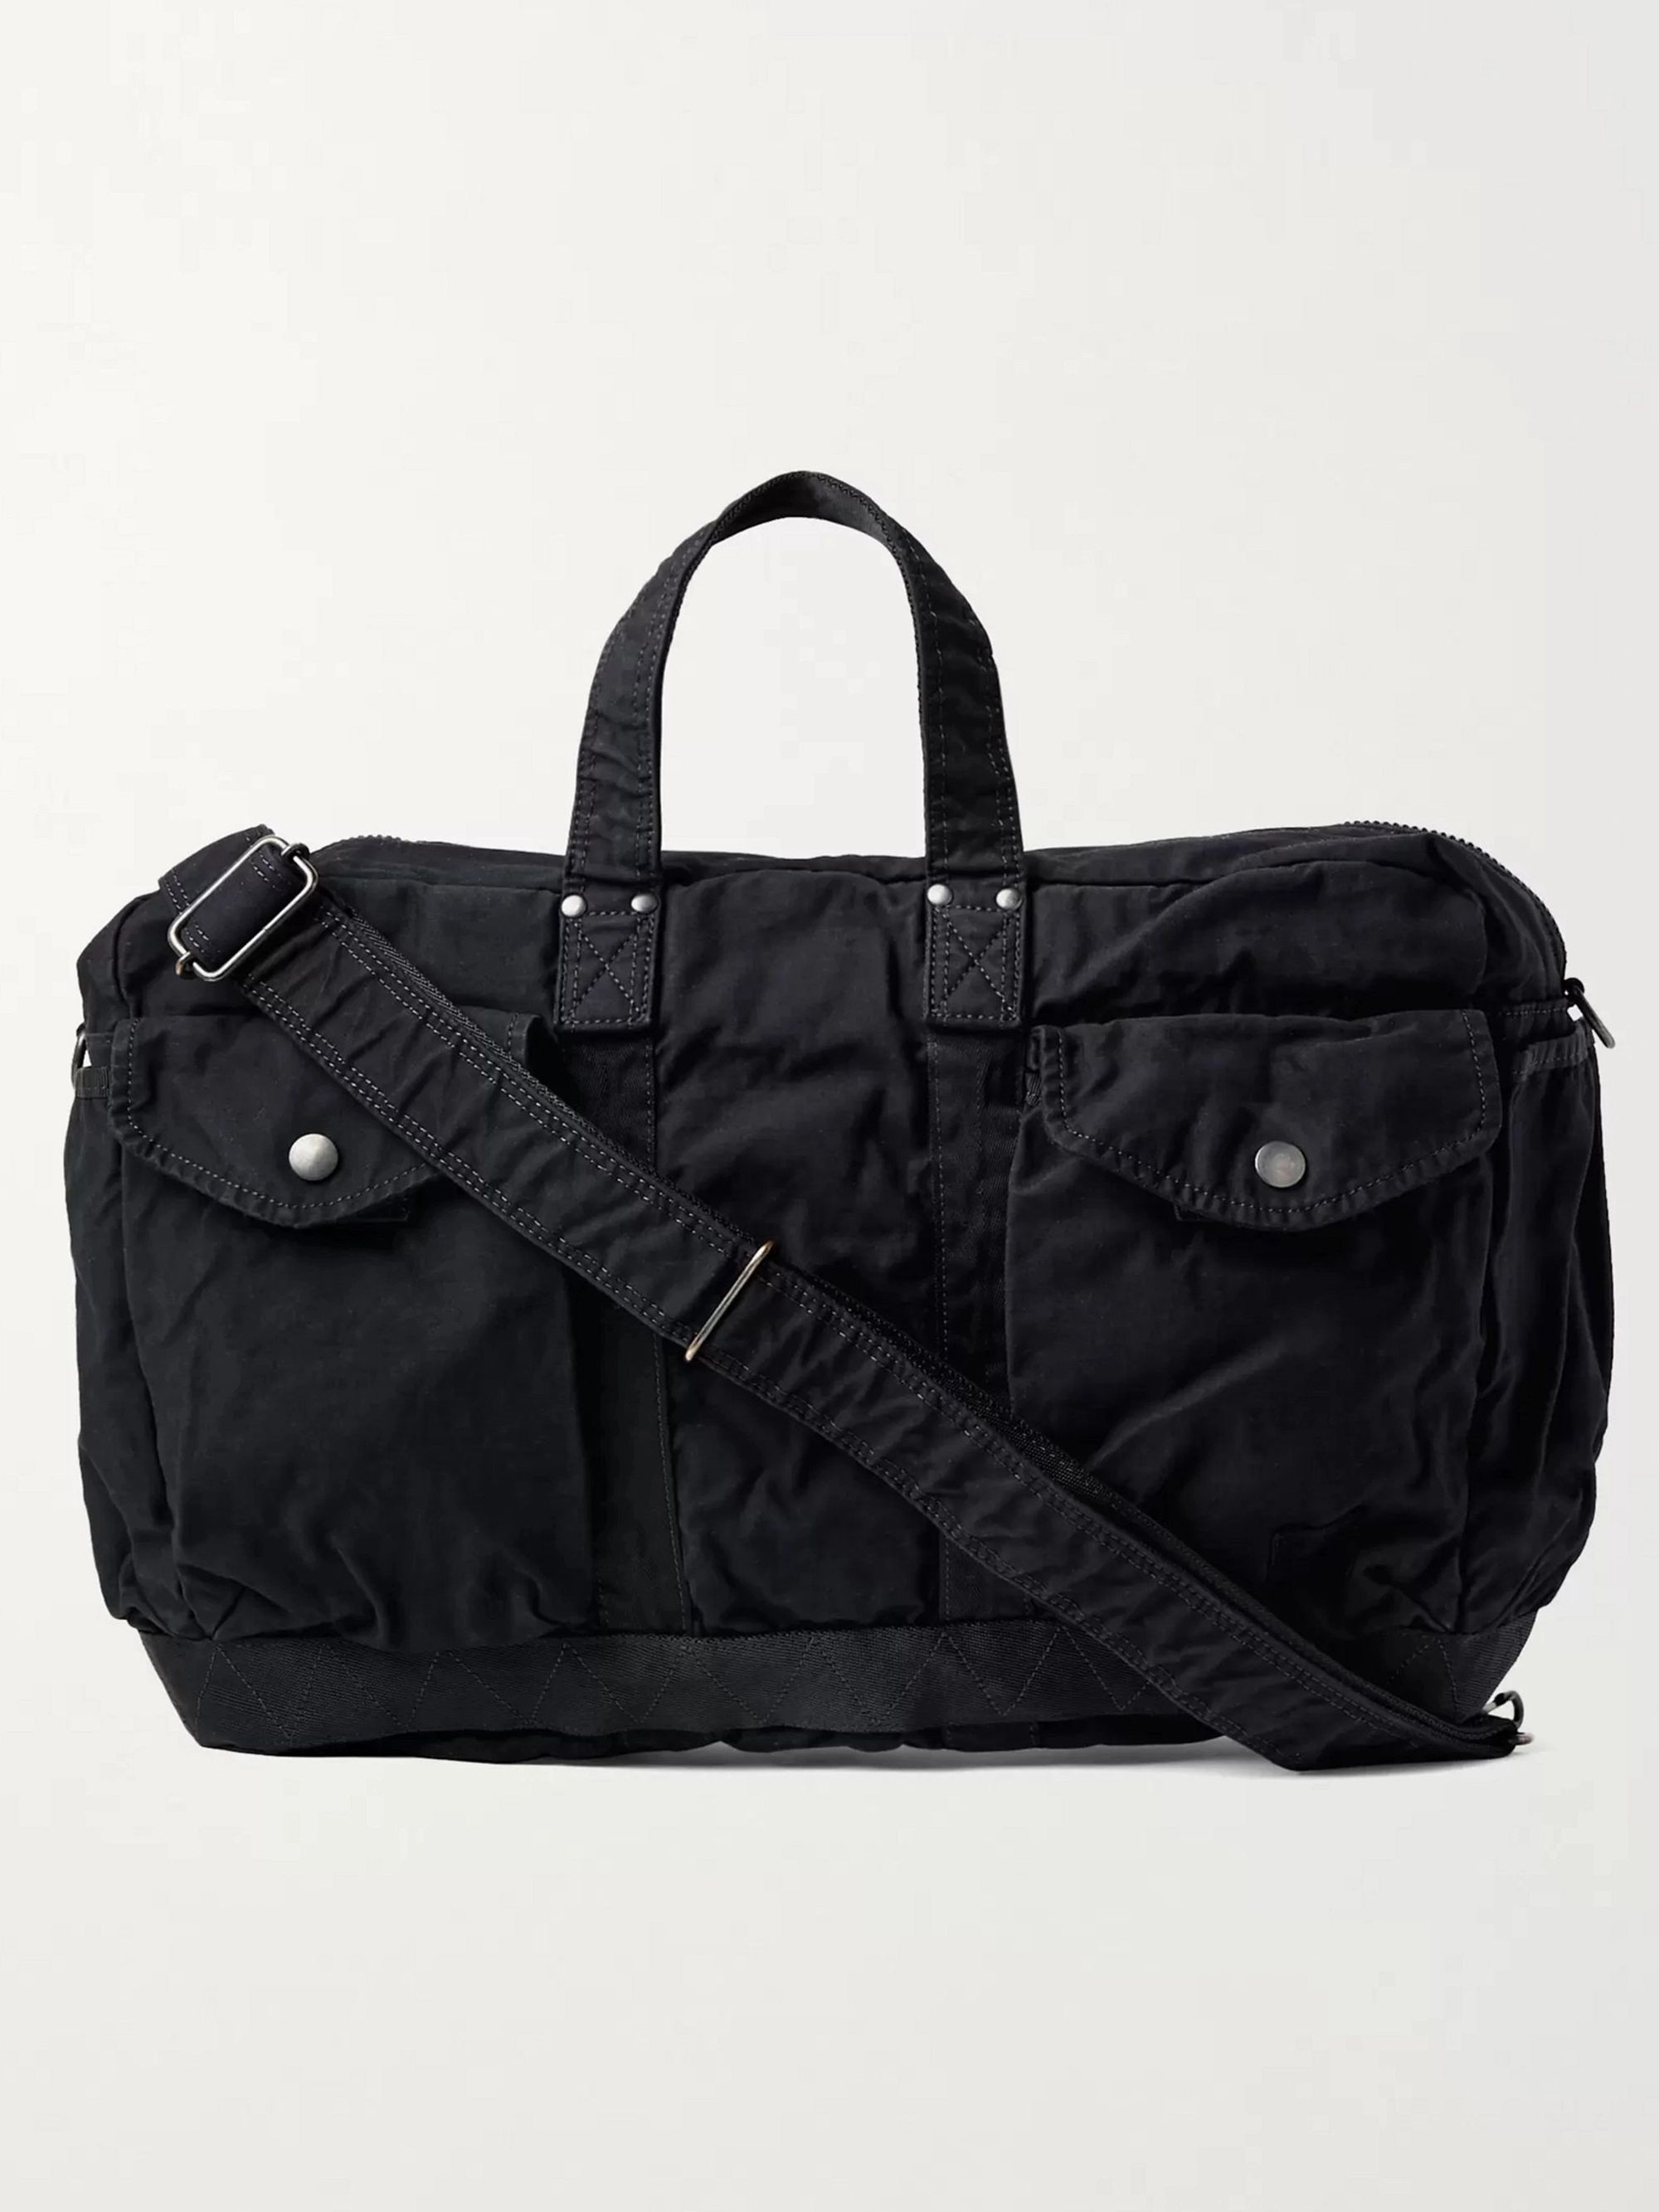 PORTER-YOSHIDA & CO 2Way Small Canvas Duffle Bag